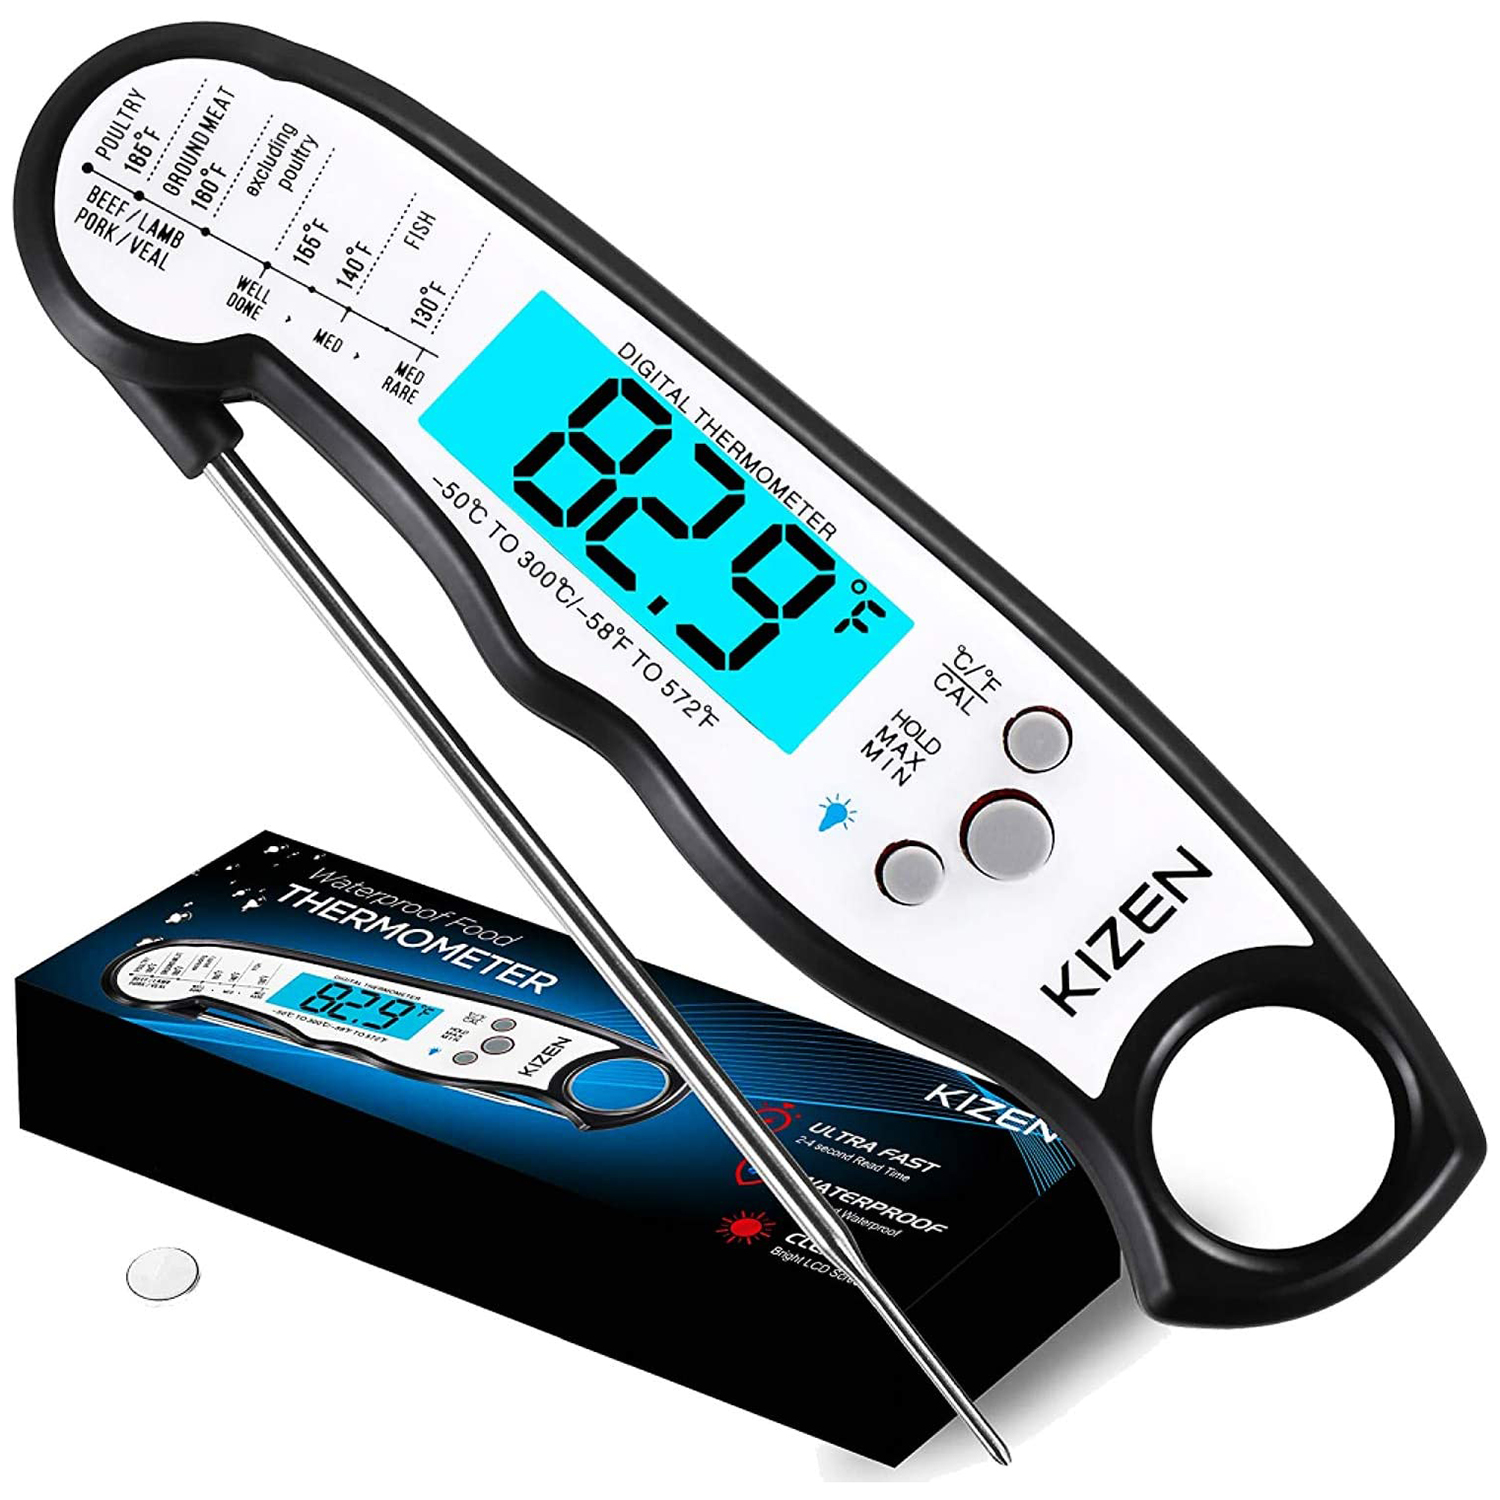 Kizen Digital Meat Thermometers for Cookin